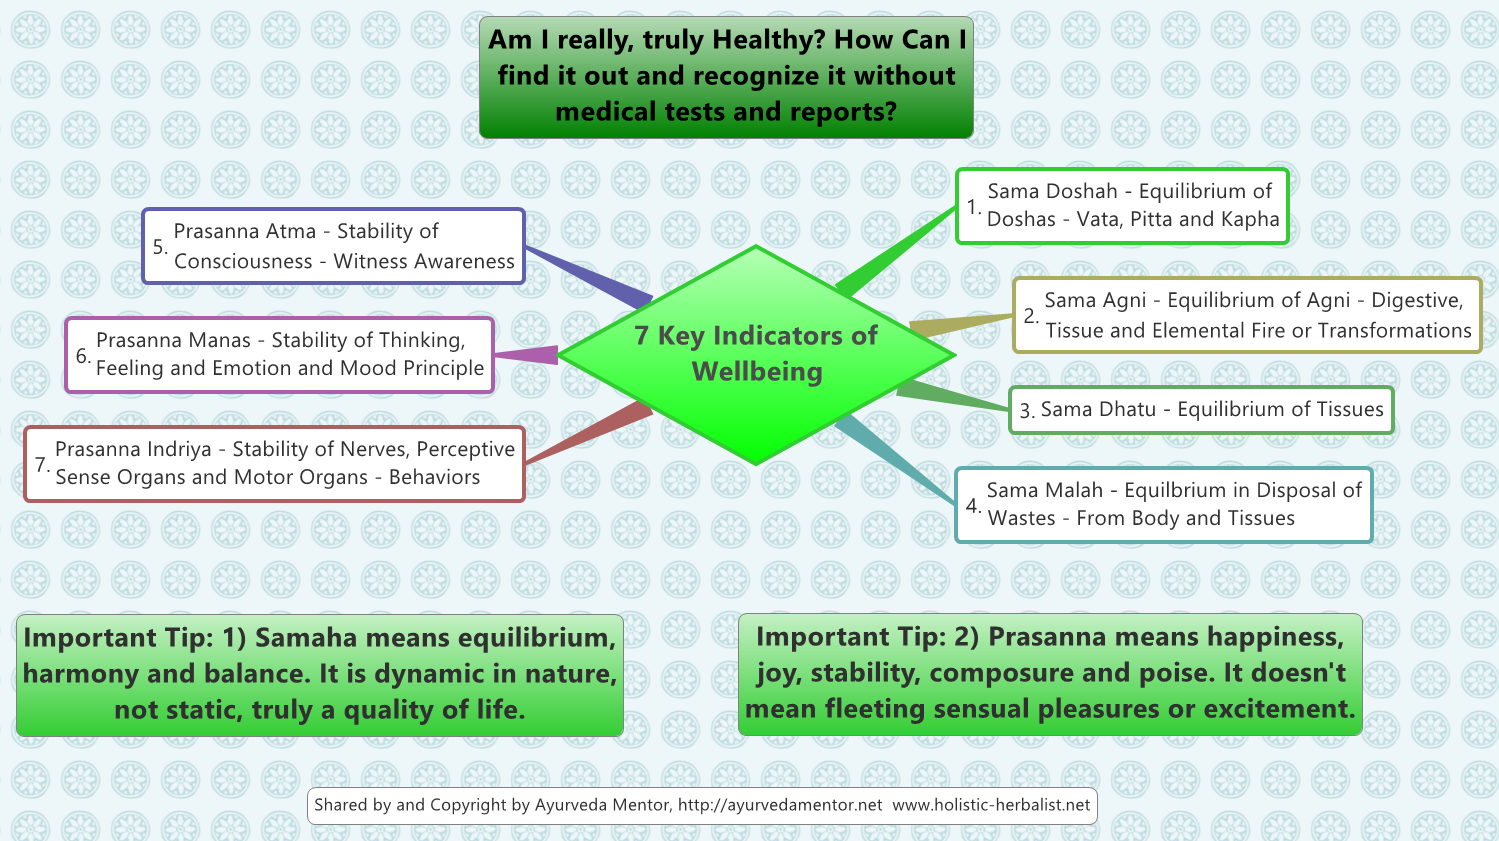 7 Key Indicators of Health and Wellbeing in Ayurveda